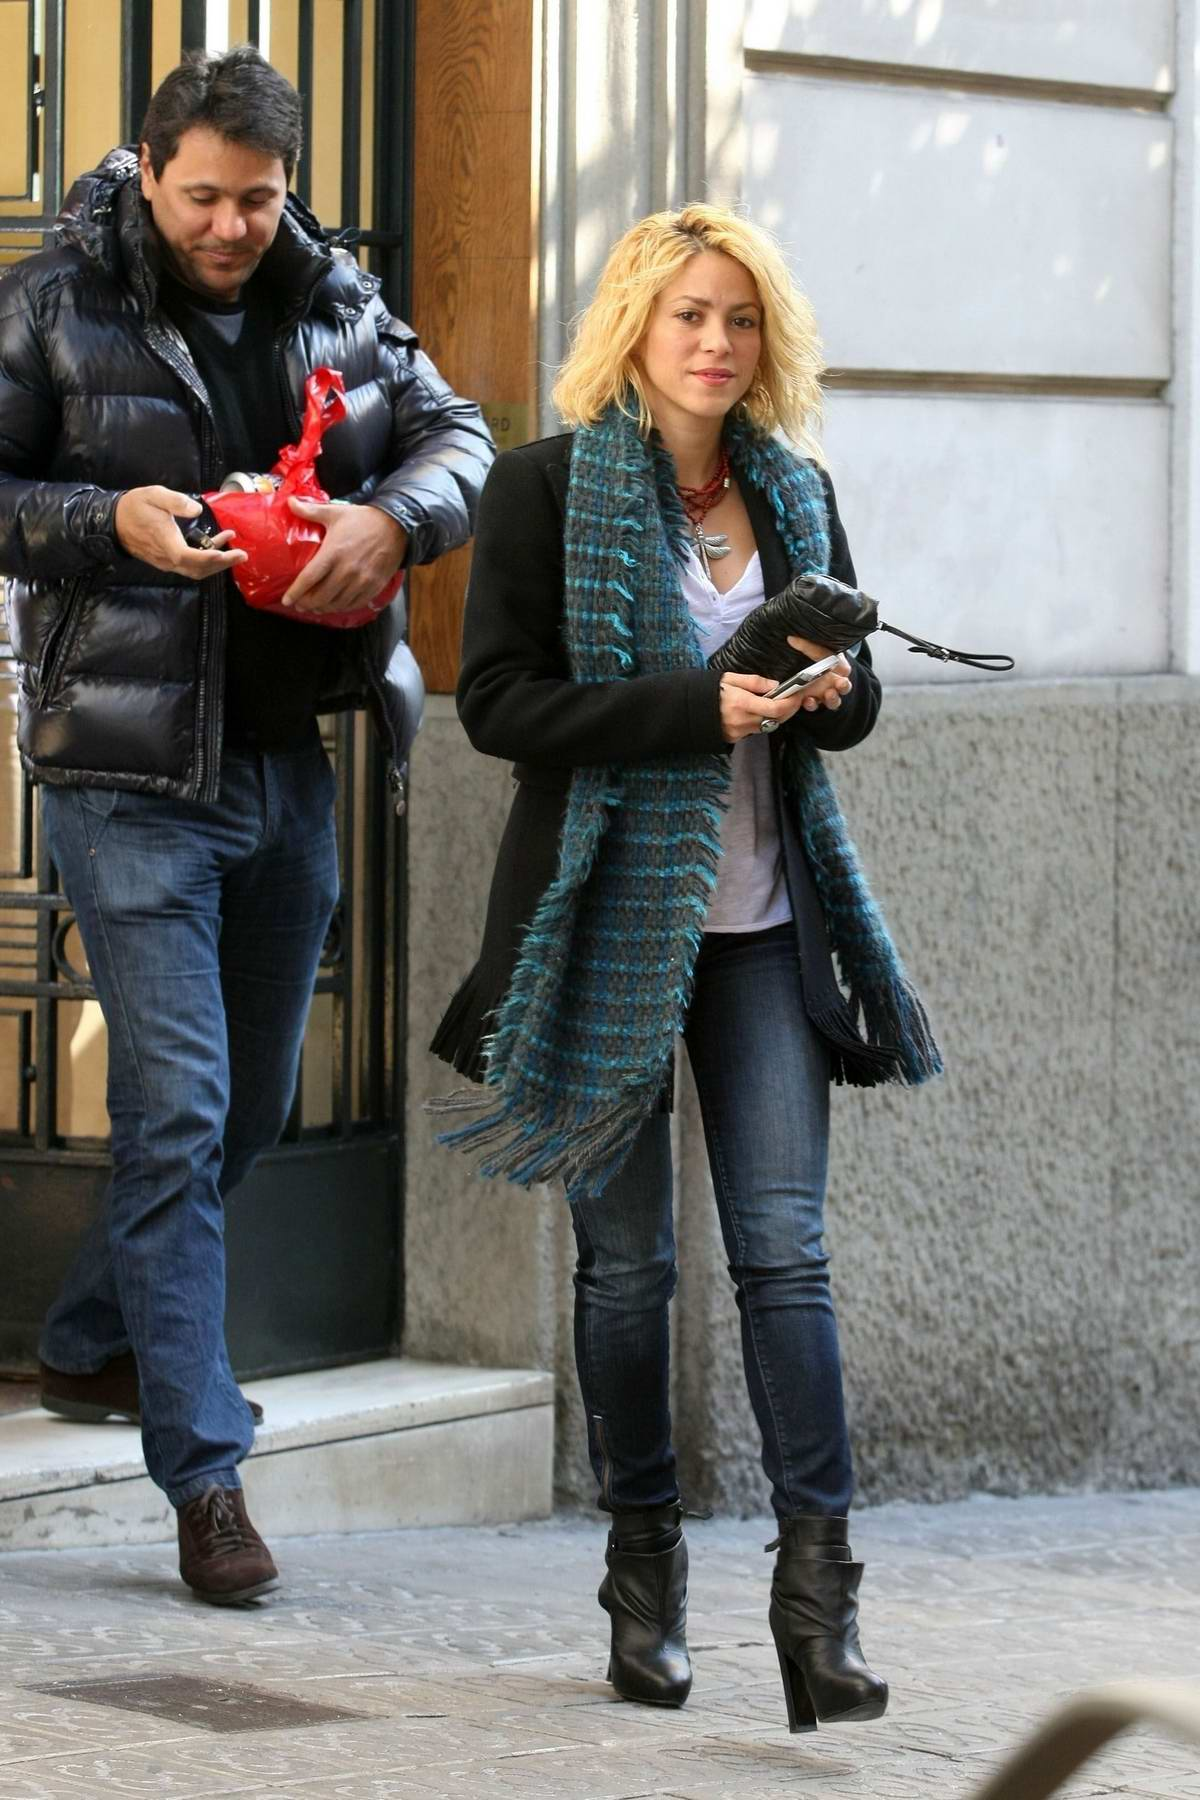 C:\Downloads\Today\A Stage\[Originals]\shakira - steps out in barcelona-280119_1.jpg C:\Downloads\Today\A Stage\[Originals]\shakira - steps out in barcelona-280119_2.jpg C:\Downloads\Today\A Stage\[Originals]\shakira - steps out in barcelona-280119_3.jpg C:\Downloads\Today\A Stage\[Originals]\shakira - steps out in barcelona-280119_4.jpg C:\Downloads\Today\A Stage\[Originals]\shakira - steps out in barcelona-280119_5.jpg C:\Downloads\Today\A Stage\[Originals]\shakira - steps out in barcelona-280119_6.jpg C:\Downloads\Today\A Stage\[Originals]\shakira - steps out in barcelona-280119_7.jpg C:\Downloads\Today\A Stage\[Originals]\shakira - steps out in barcelona-280119_8.jpg